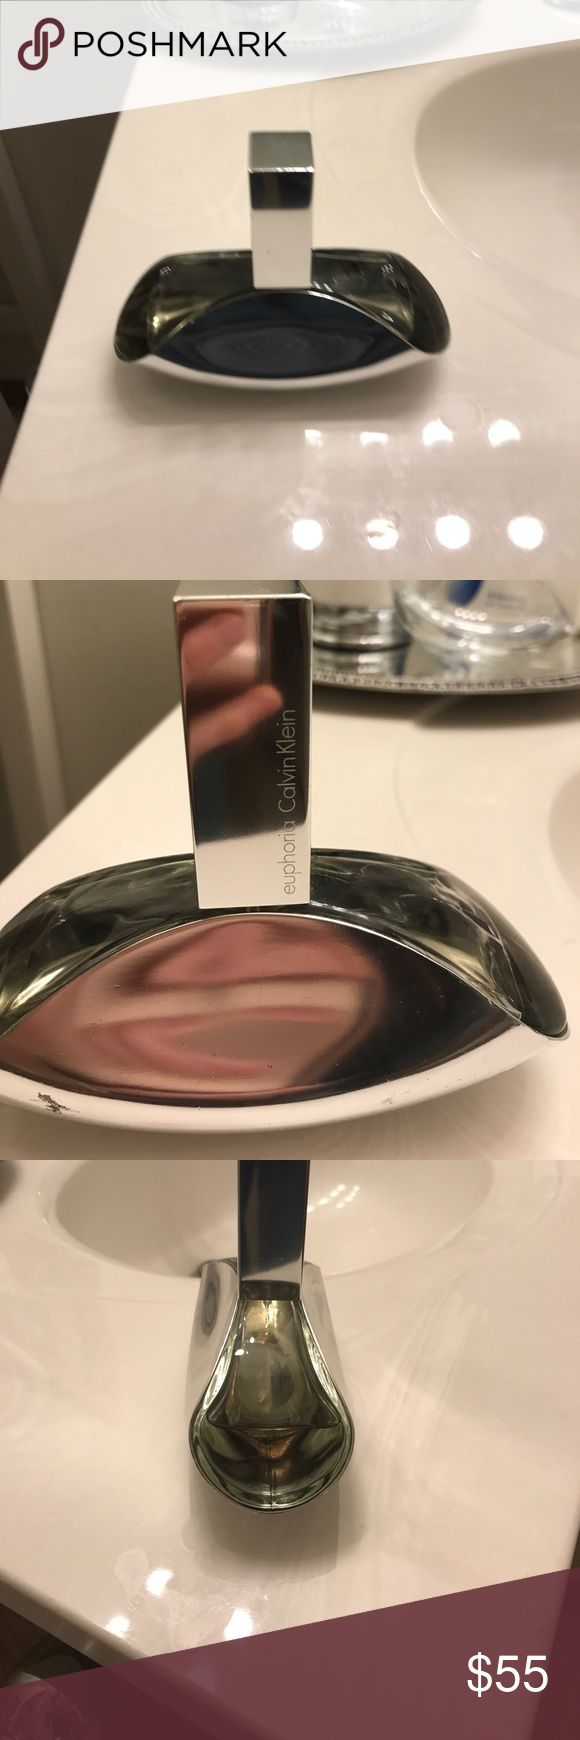 Calvin Klein euphoria perfume I'm selling a bottle of Calvin Klein euphoria perfume. It is a 3.4 fluid ounce bottle. It has only been used a couple times Calvin Klein Other